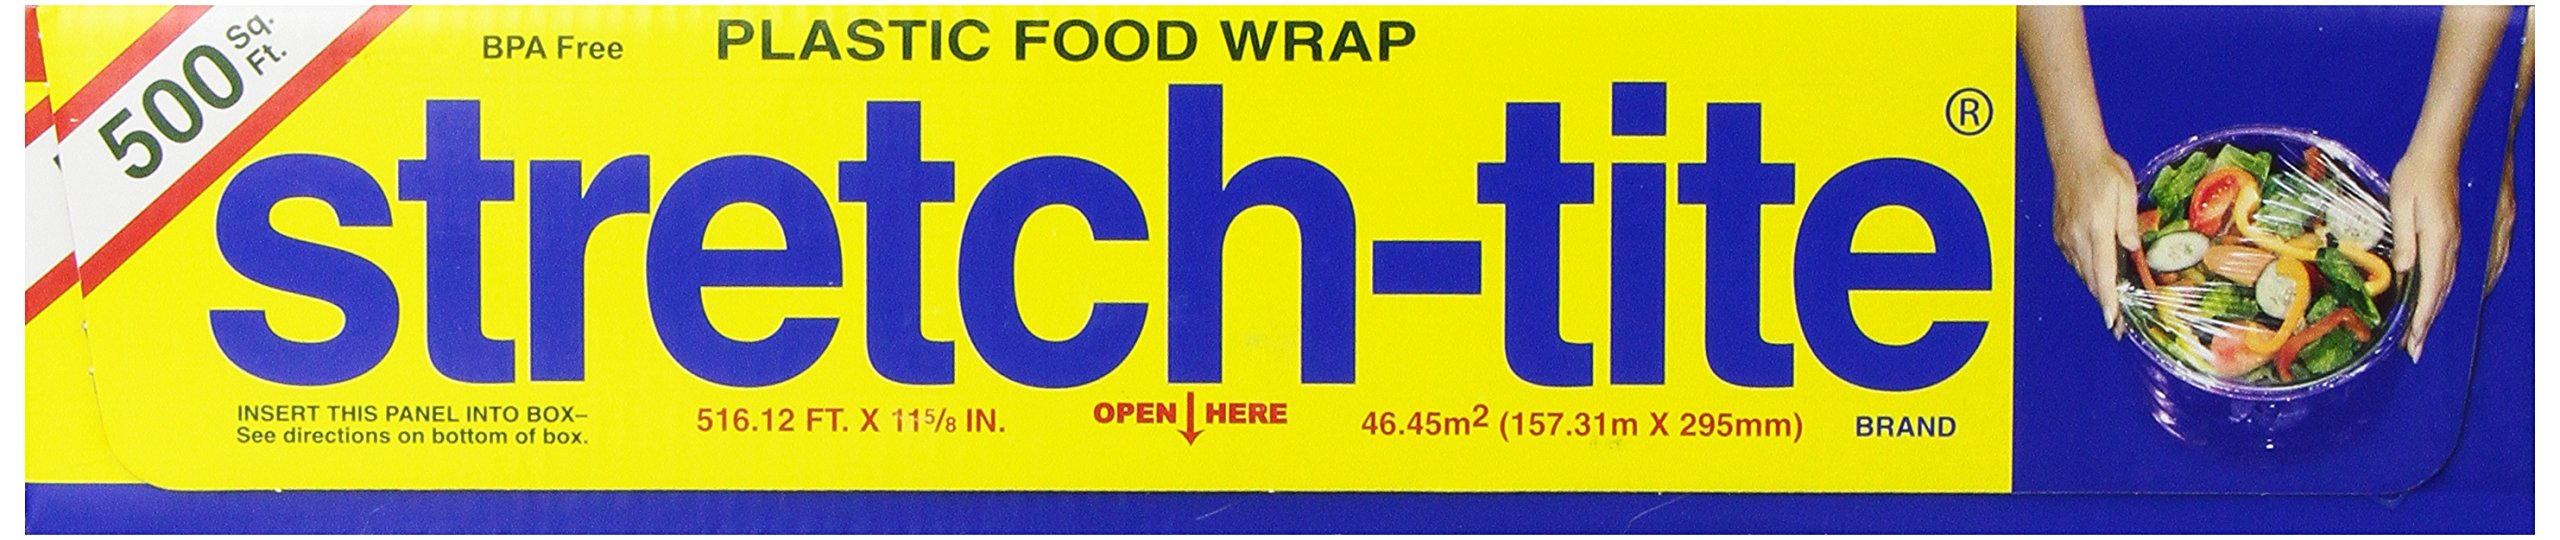 Stretch-tite  Plastic Food Wrap, 500 Sq. Ft., 516.12-Ft.  x 11.5/8-Inch Rolls (Pack of 4) by Polyvinyl Films Inc